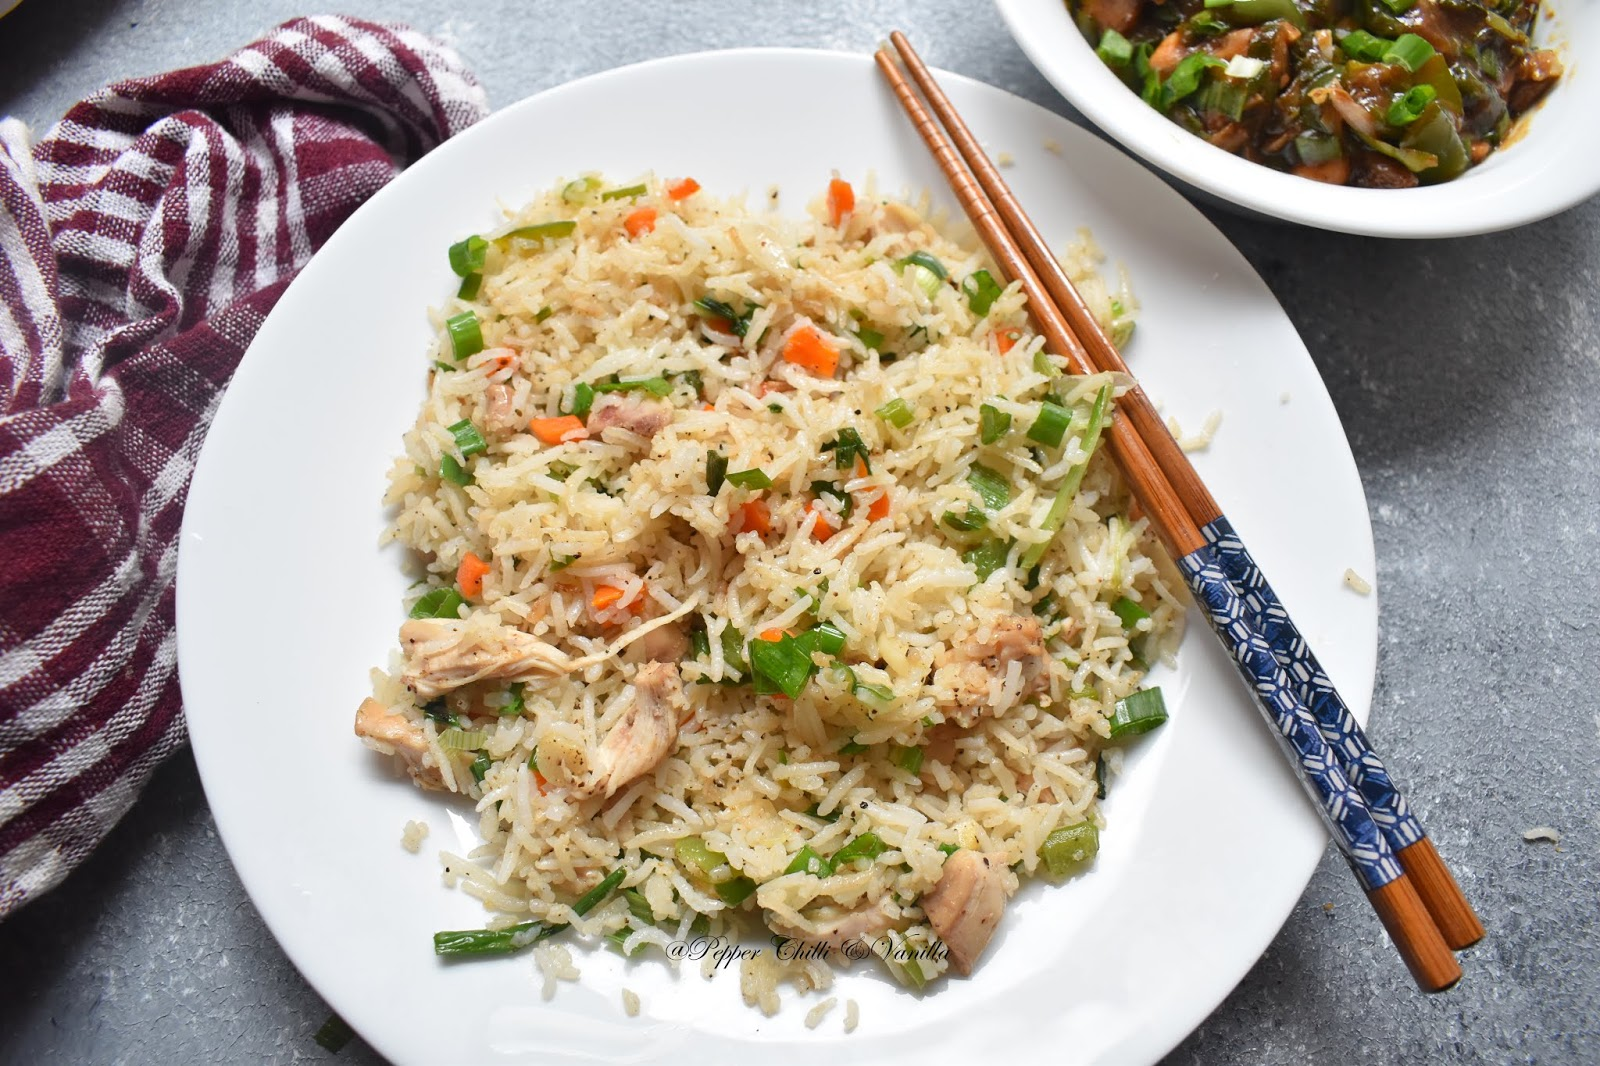 Chicken fried rice recipe restaurant style chinese fried rice how to make perfect fried rice ccuart Image collections